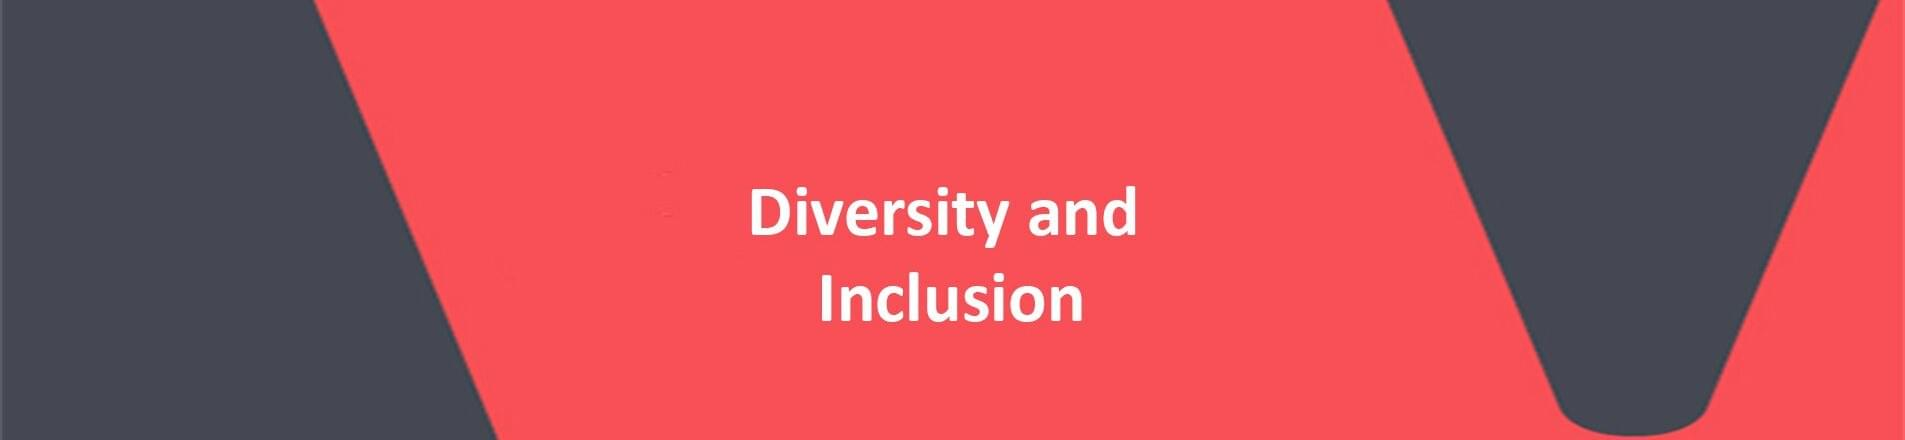 The words 'Diversity and Inclusion' on red VERCIDA background